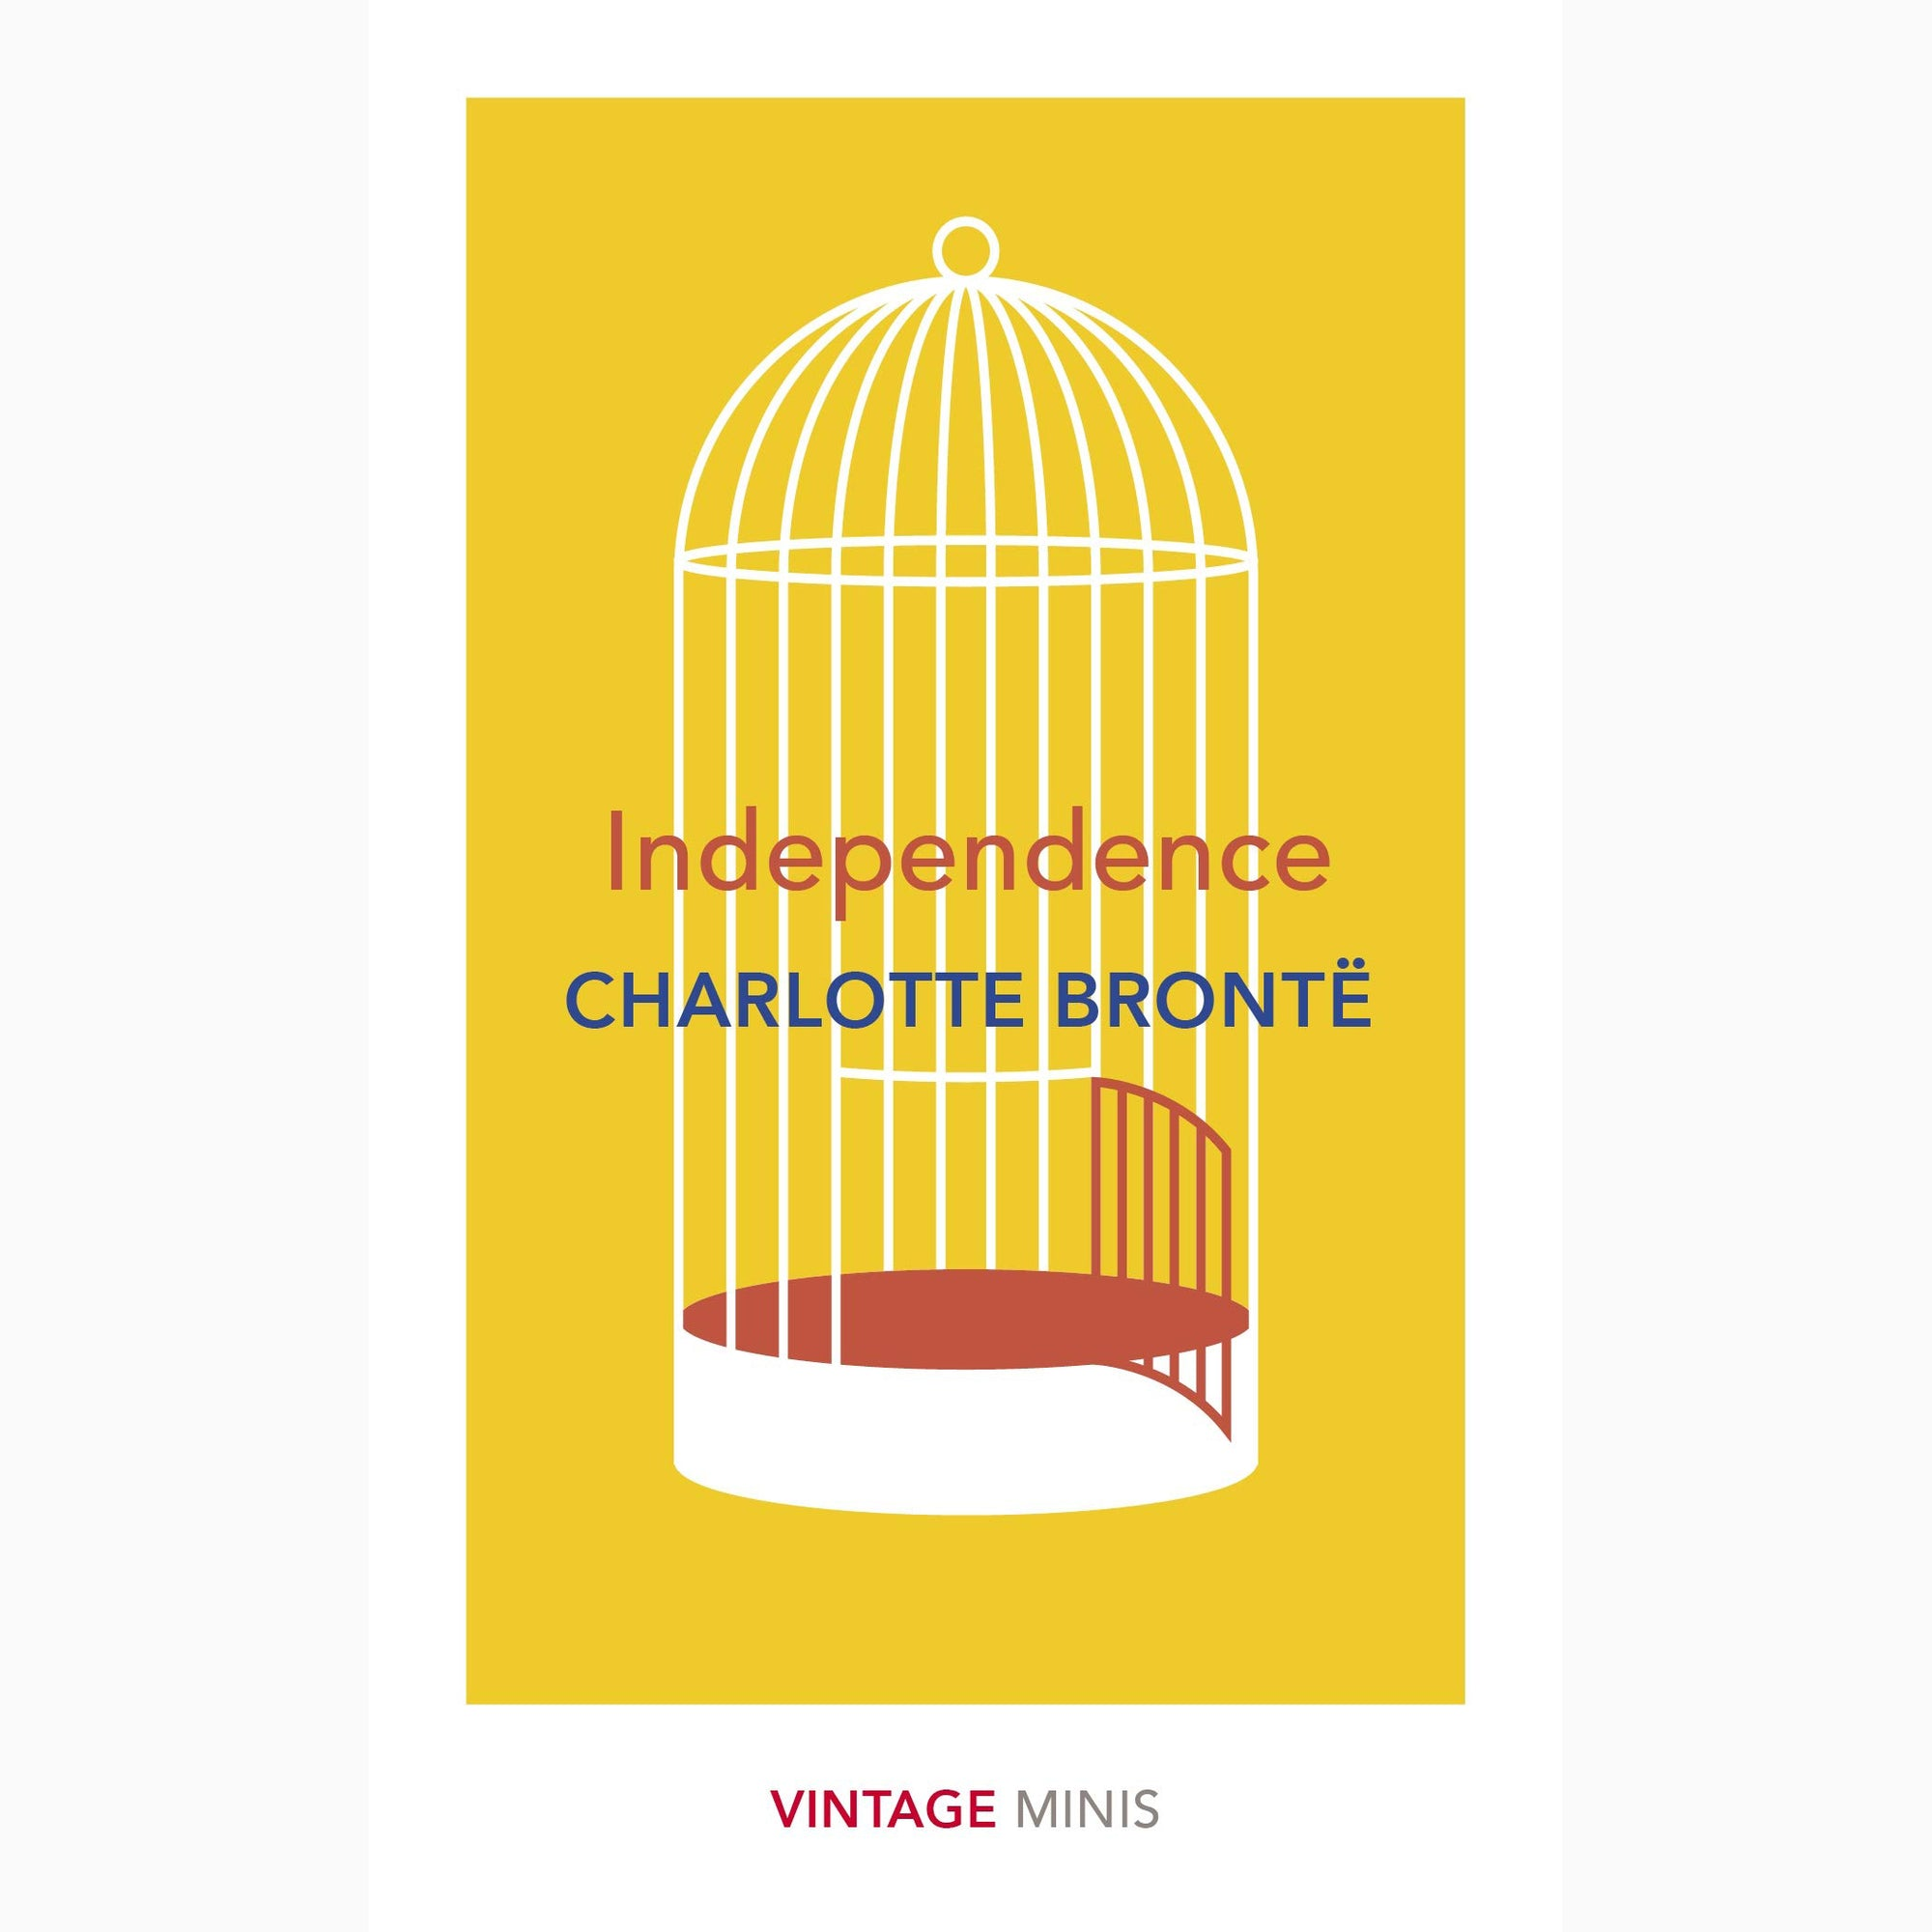 Independence cover writings by Charlotte Bronte